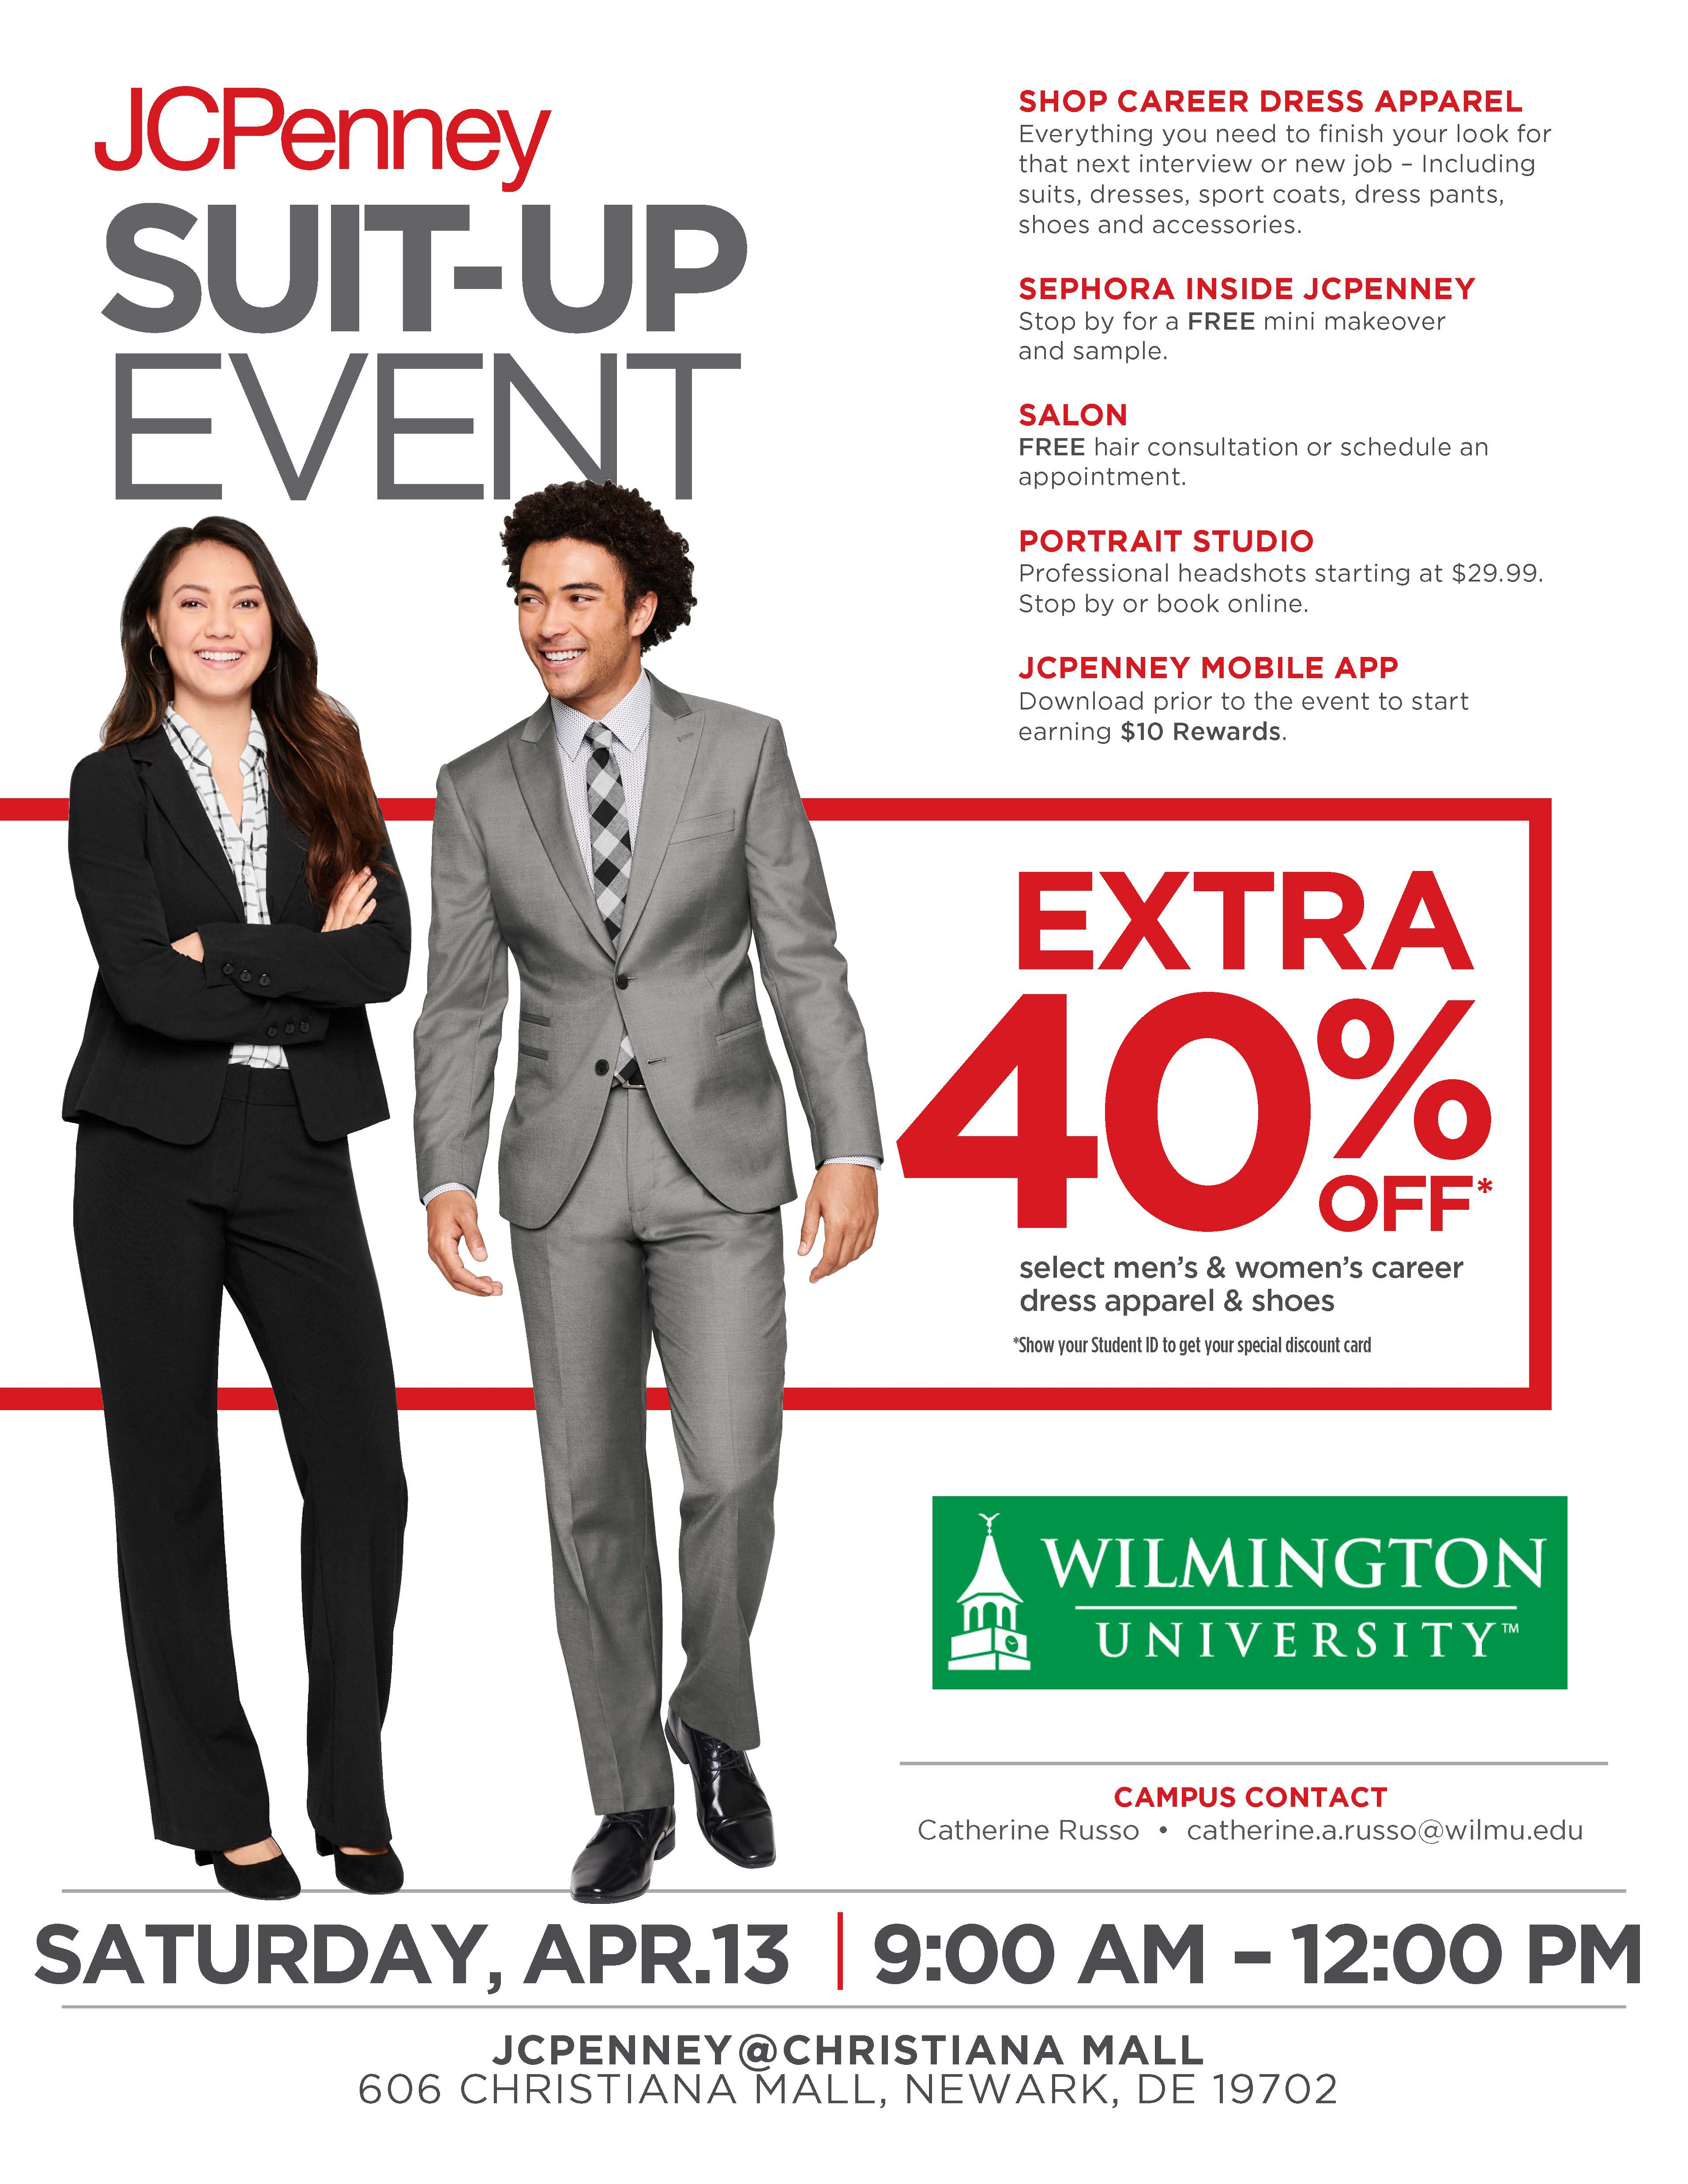 Student Services Calendar - JCPenney Suit Up Event